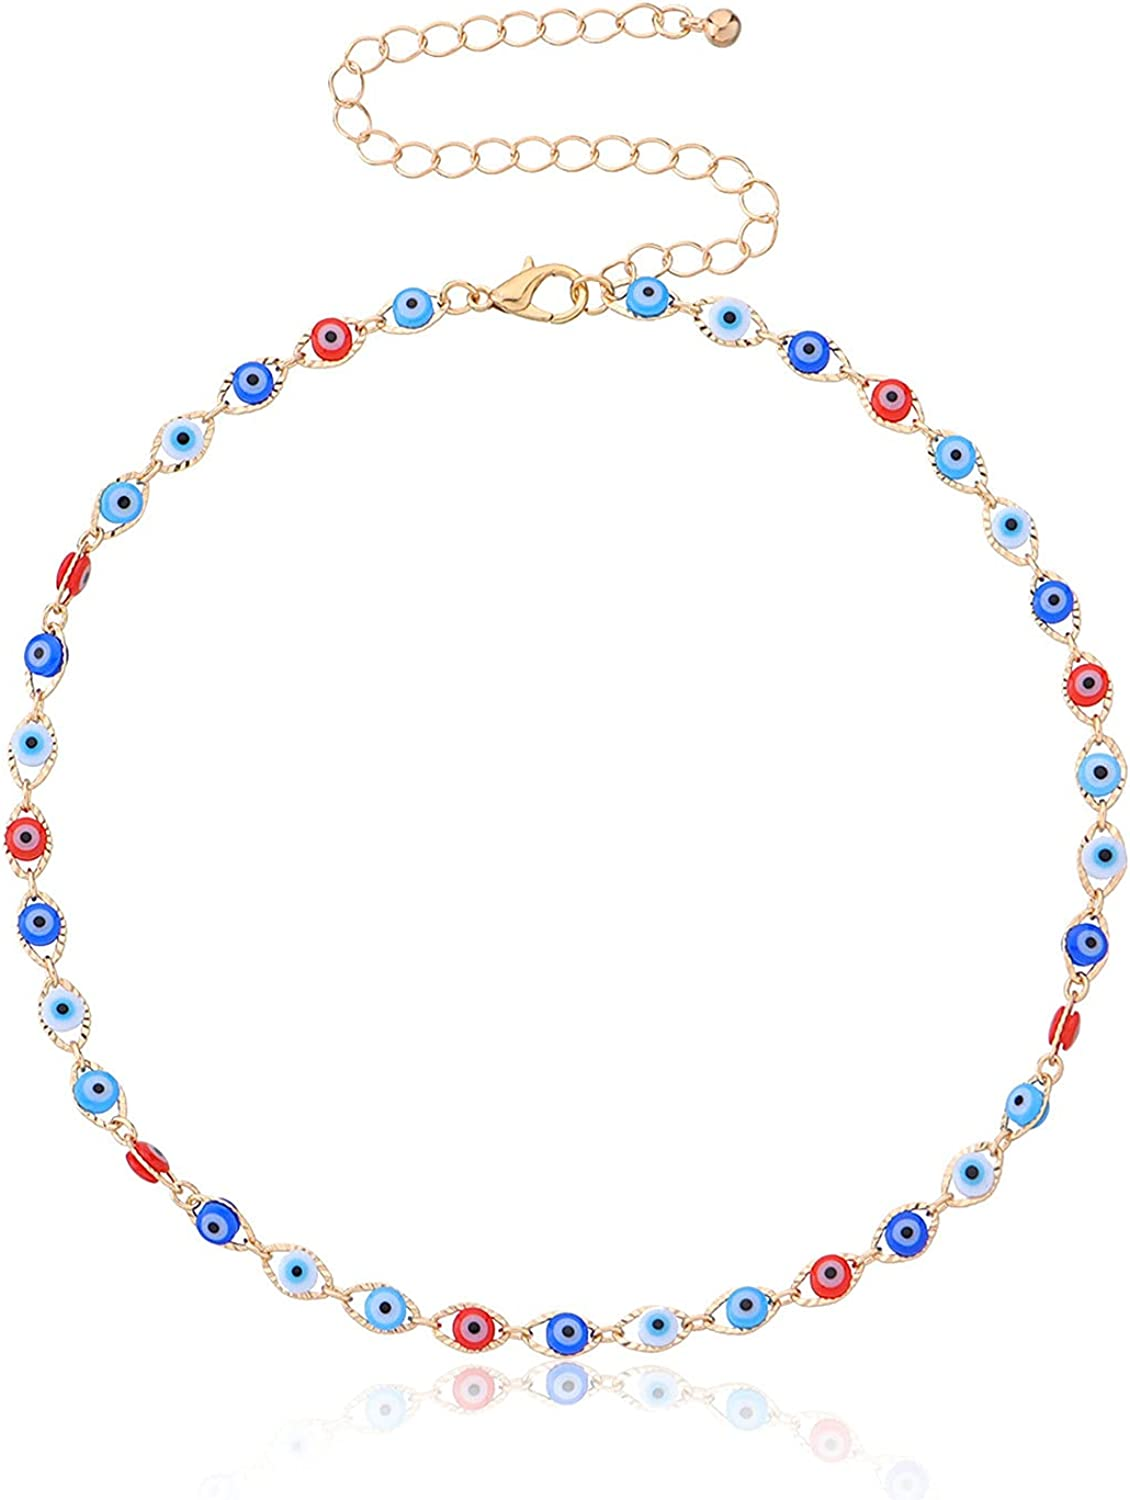 COLORFUL BLING Multilayer Evil Eye Beads Choker Dainty 14K Gold Plated Evil Eye Beaded Pendant Collar Necklace Lucky Protection Jewelry for Women Girls